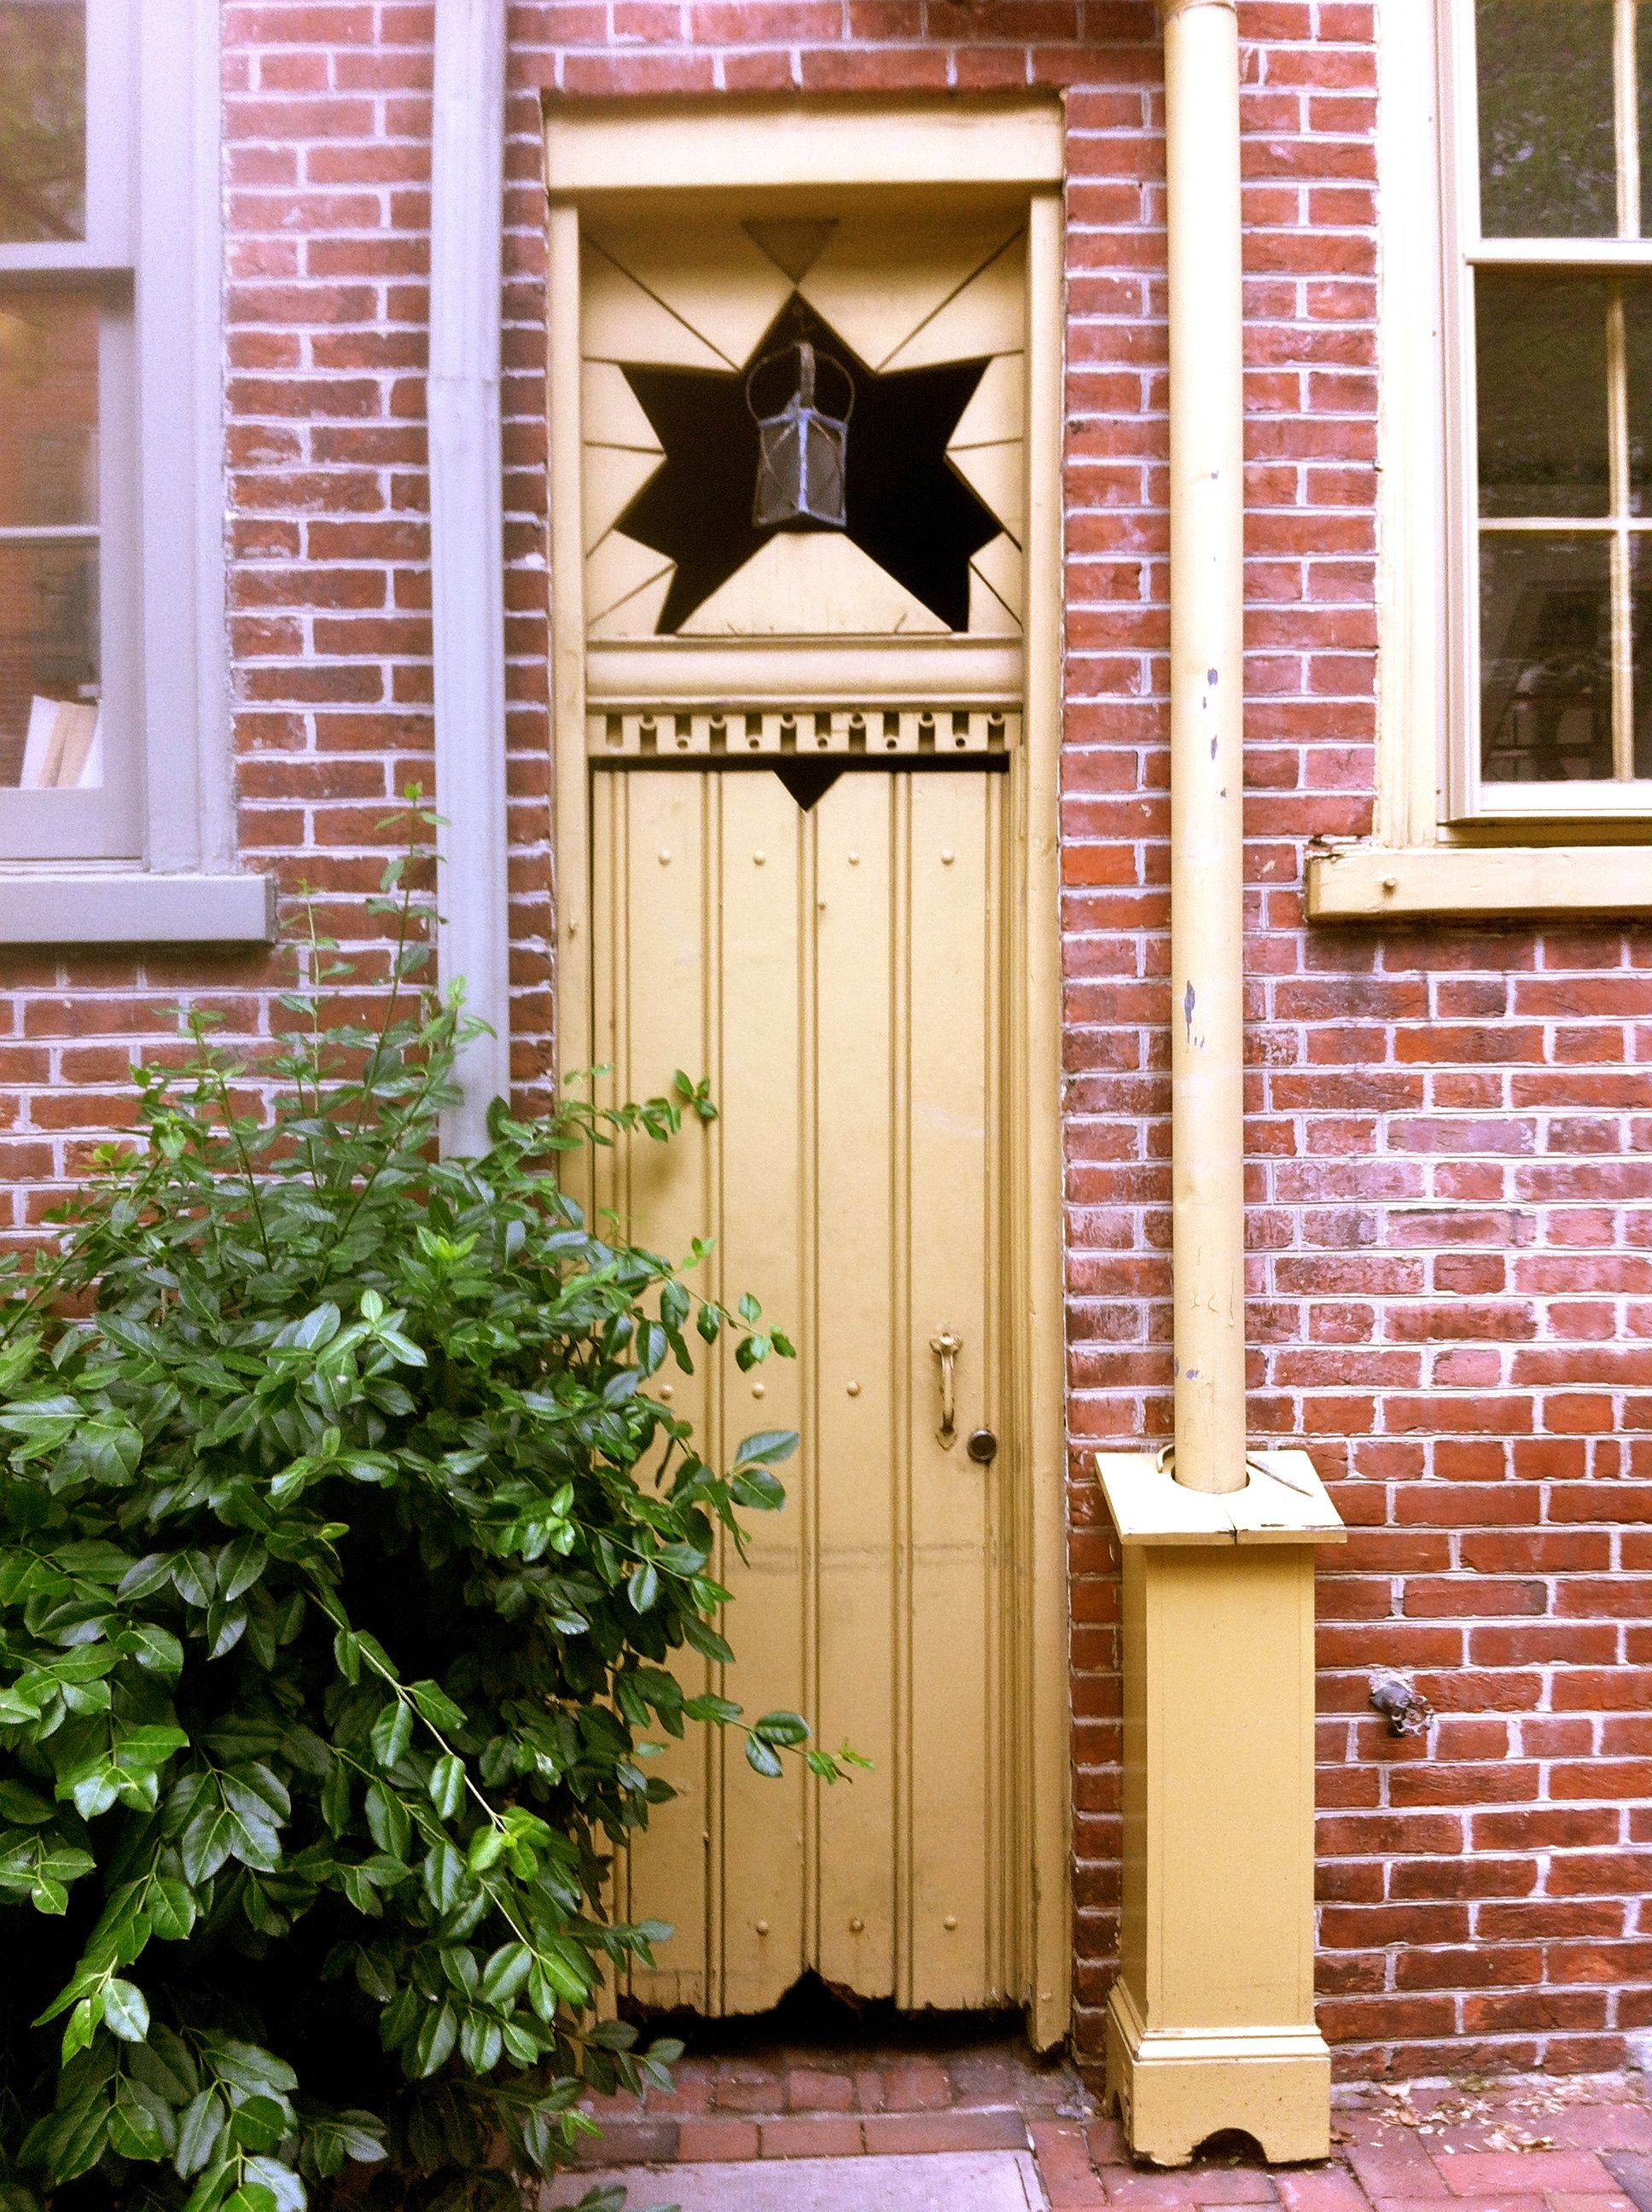 Four Cool Doors in Old City Philadelphia. Yellow Star Door & Four Cool Doors in Old City Philadelphia. Yellow Star Door ...